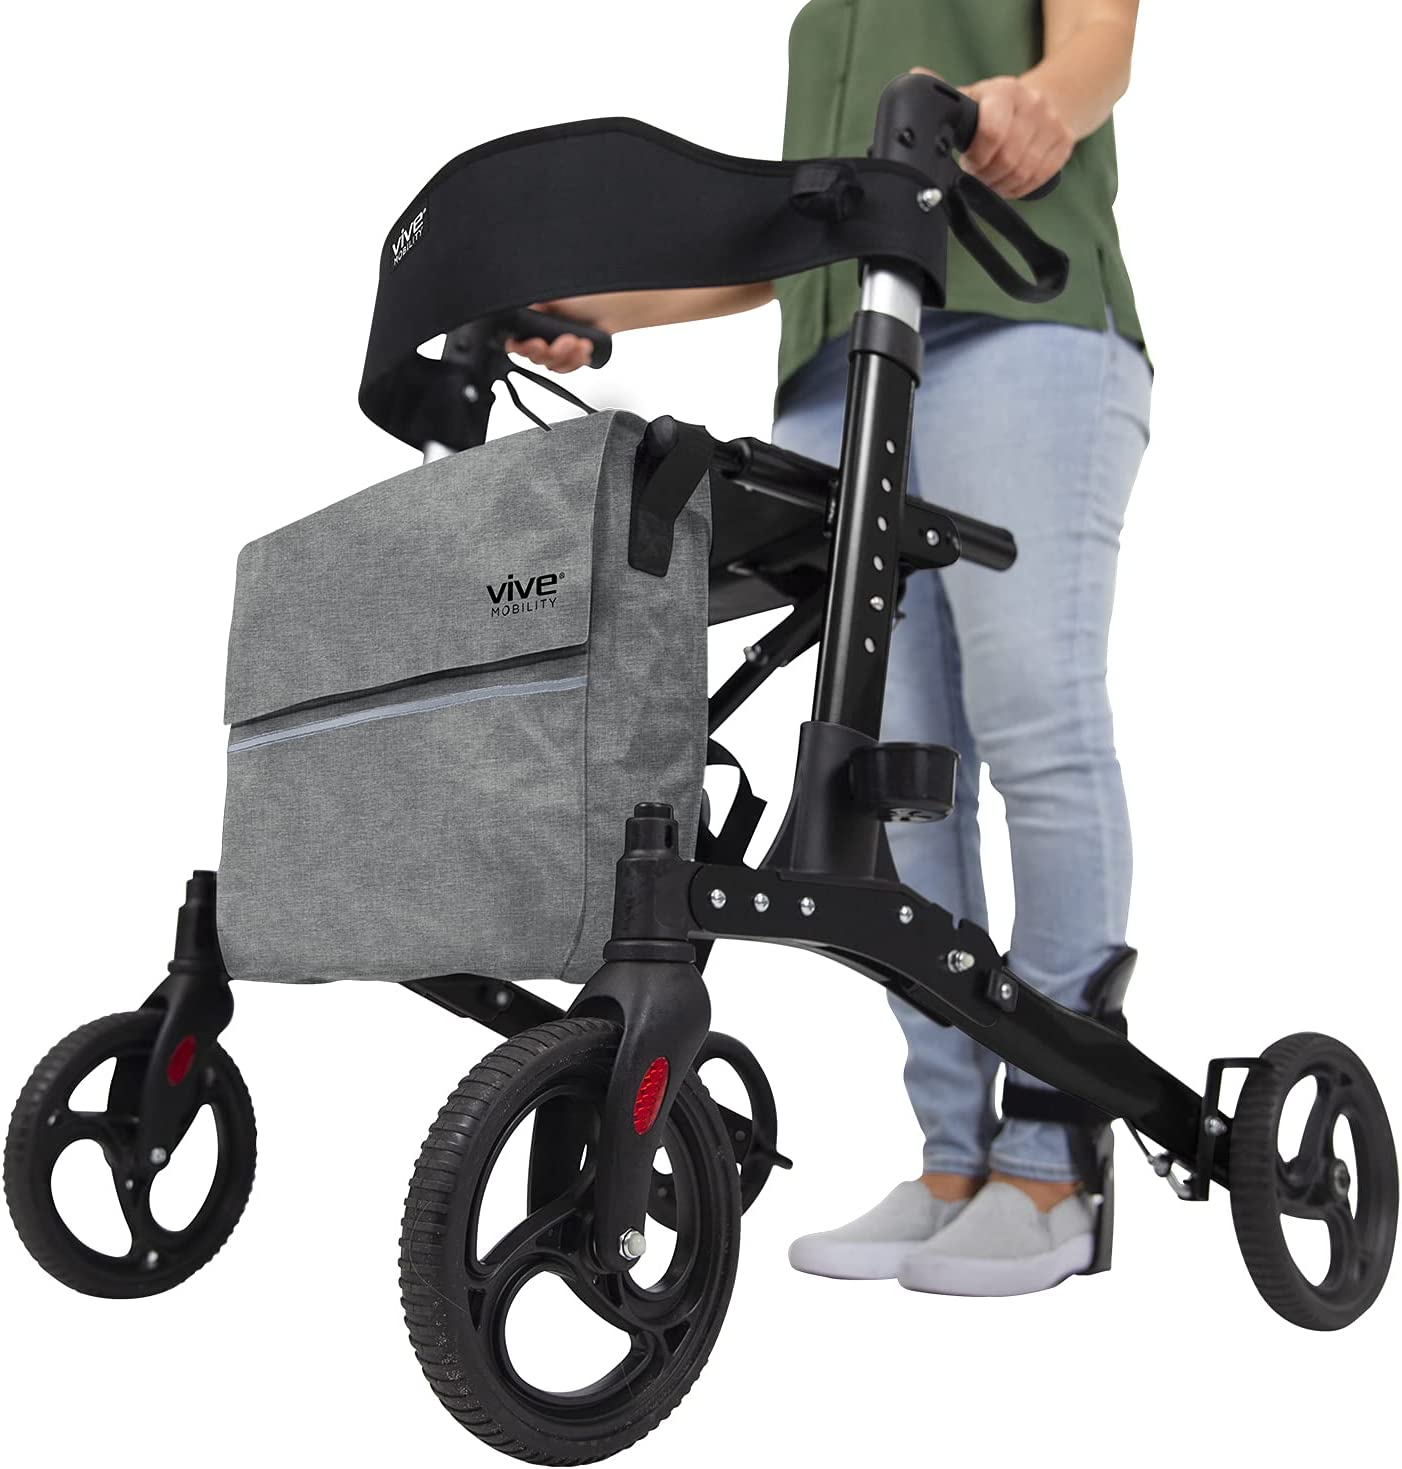 Vive Raleigh Mall Rollator Walker - Folding Medical 4 Wheel Rolling wi Free Shipping Cheap Bargain Gift